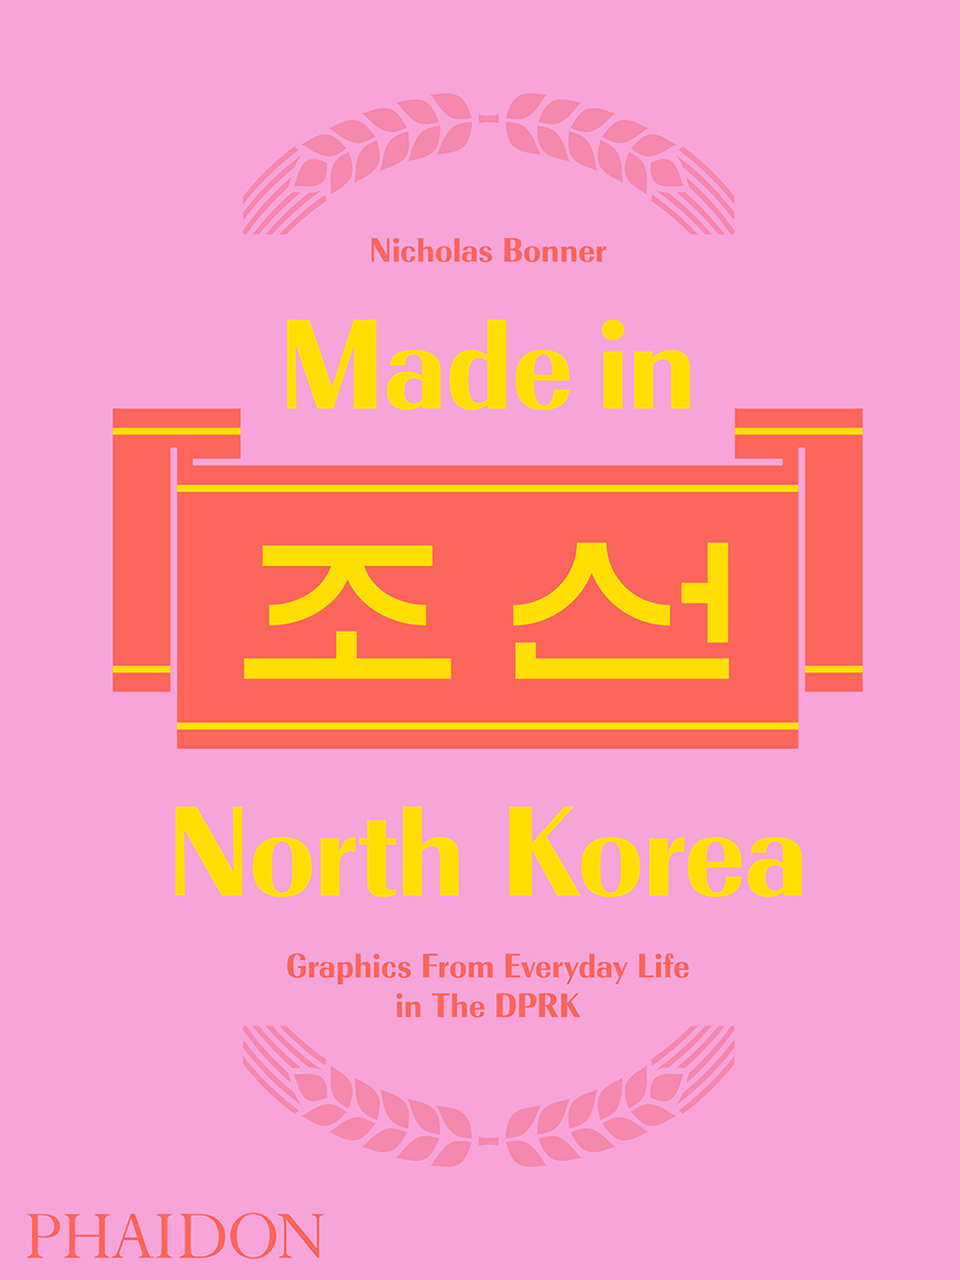 Made in North Korea Book Cover